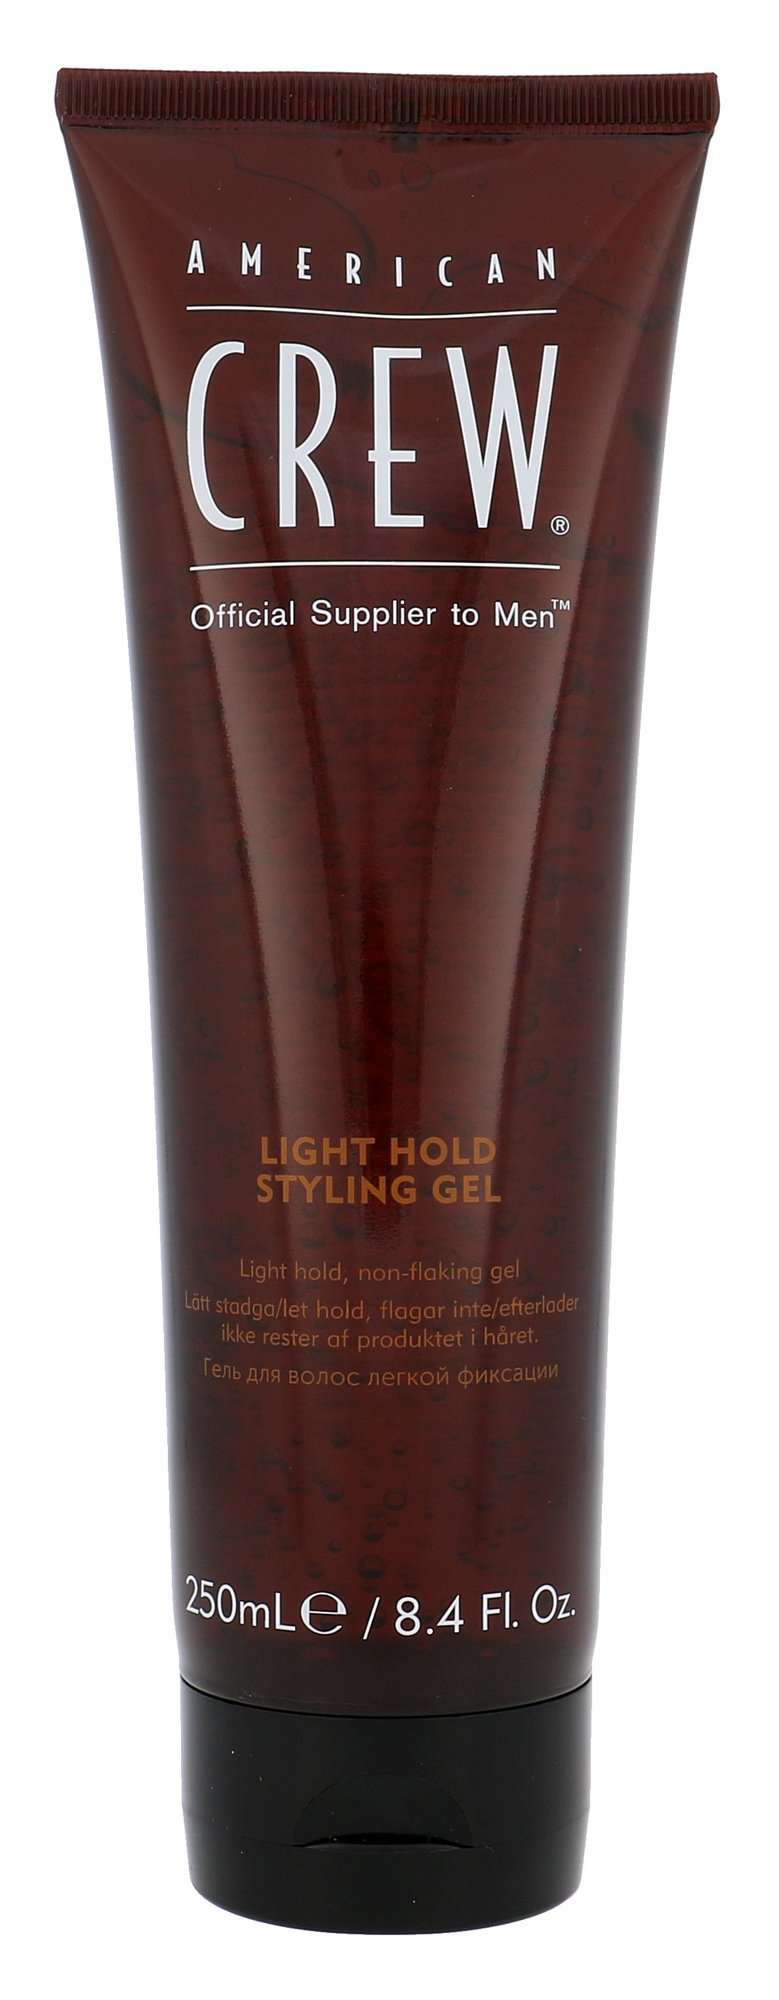 American Crew Style Cosmetic 250ml  Light Hold Styling Gel